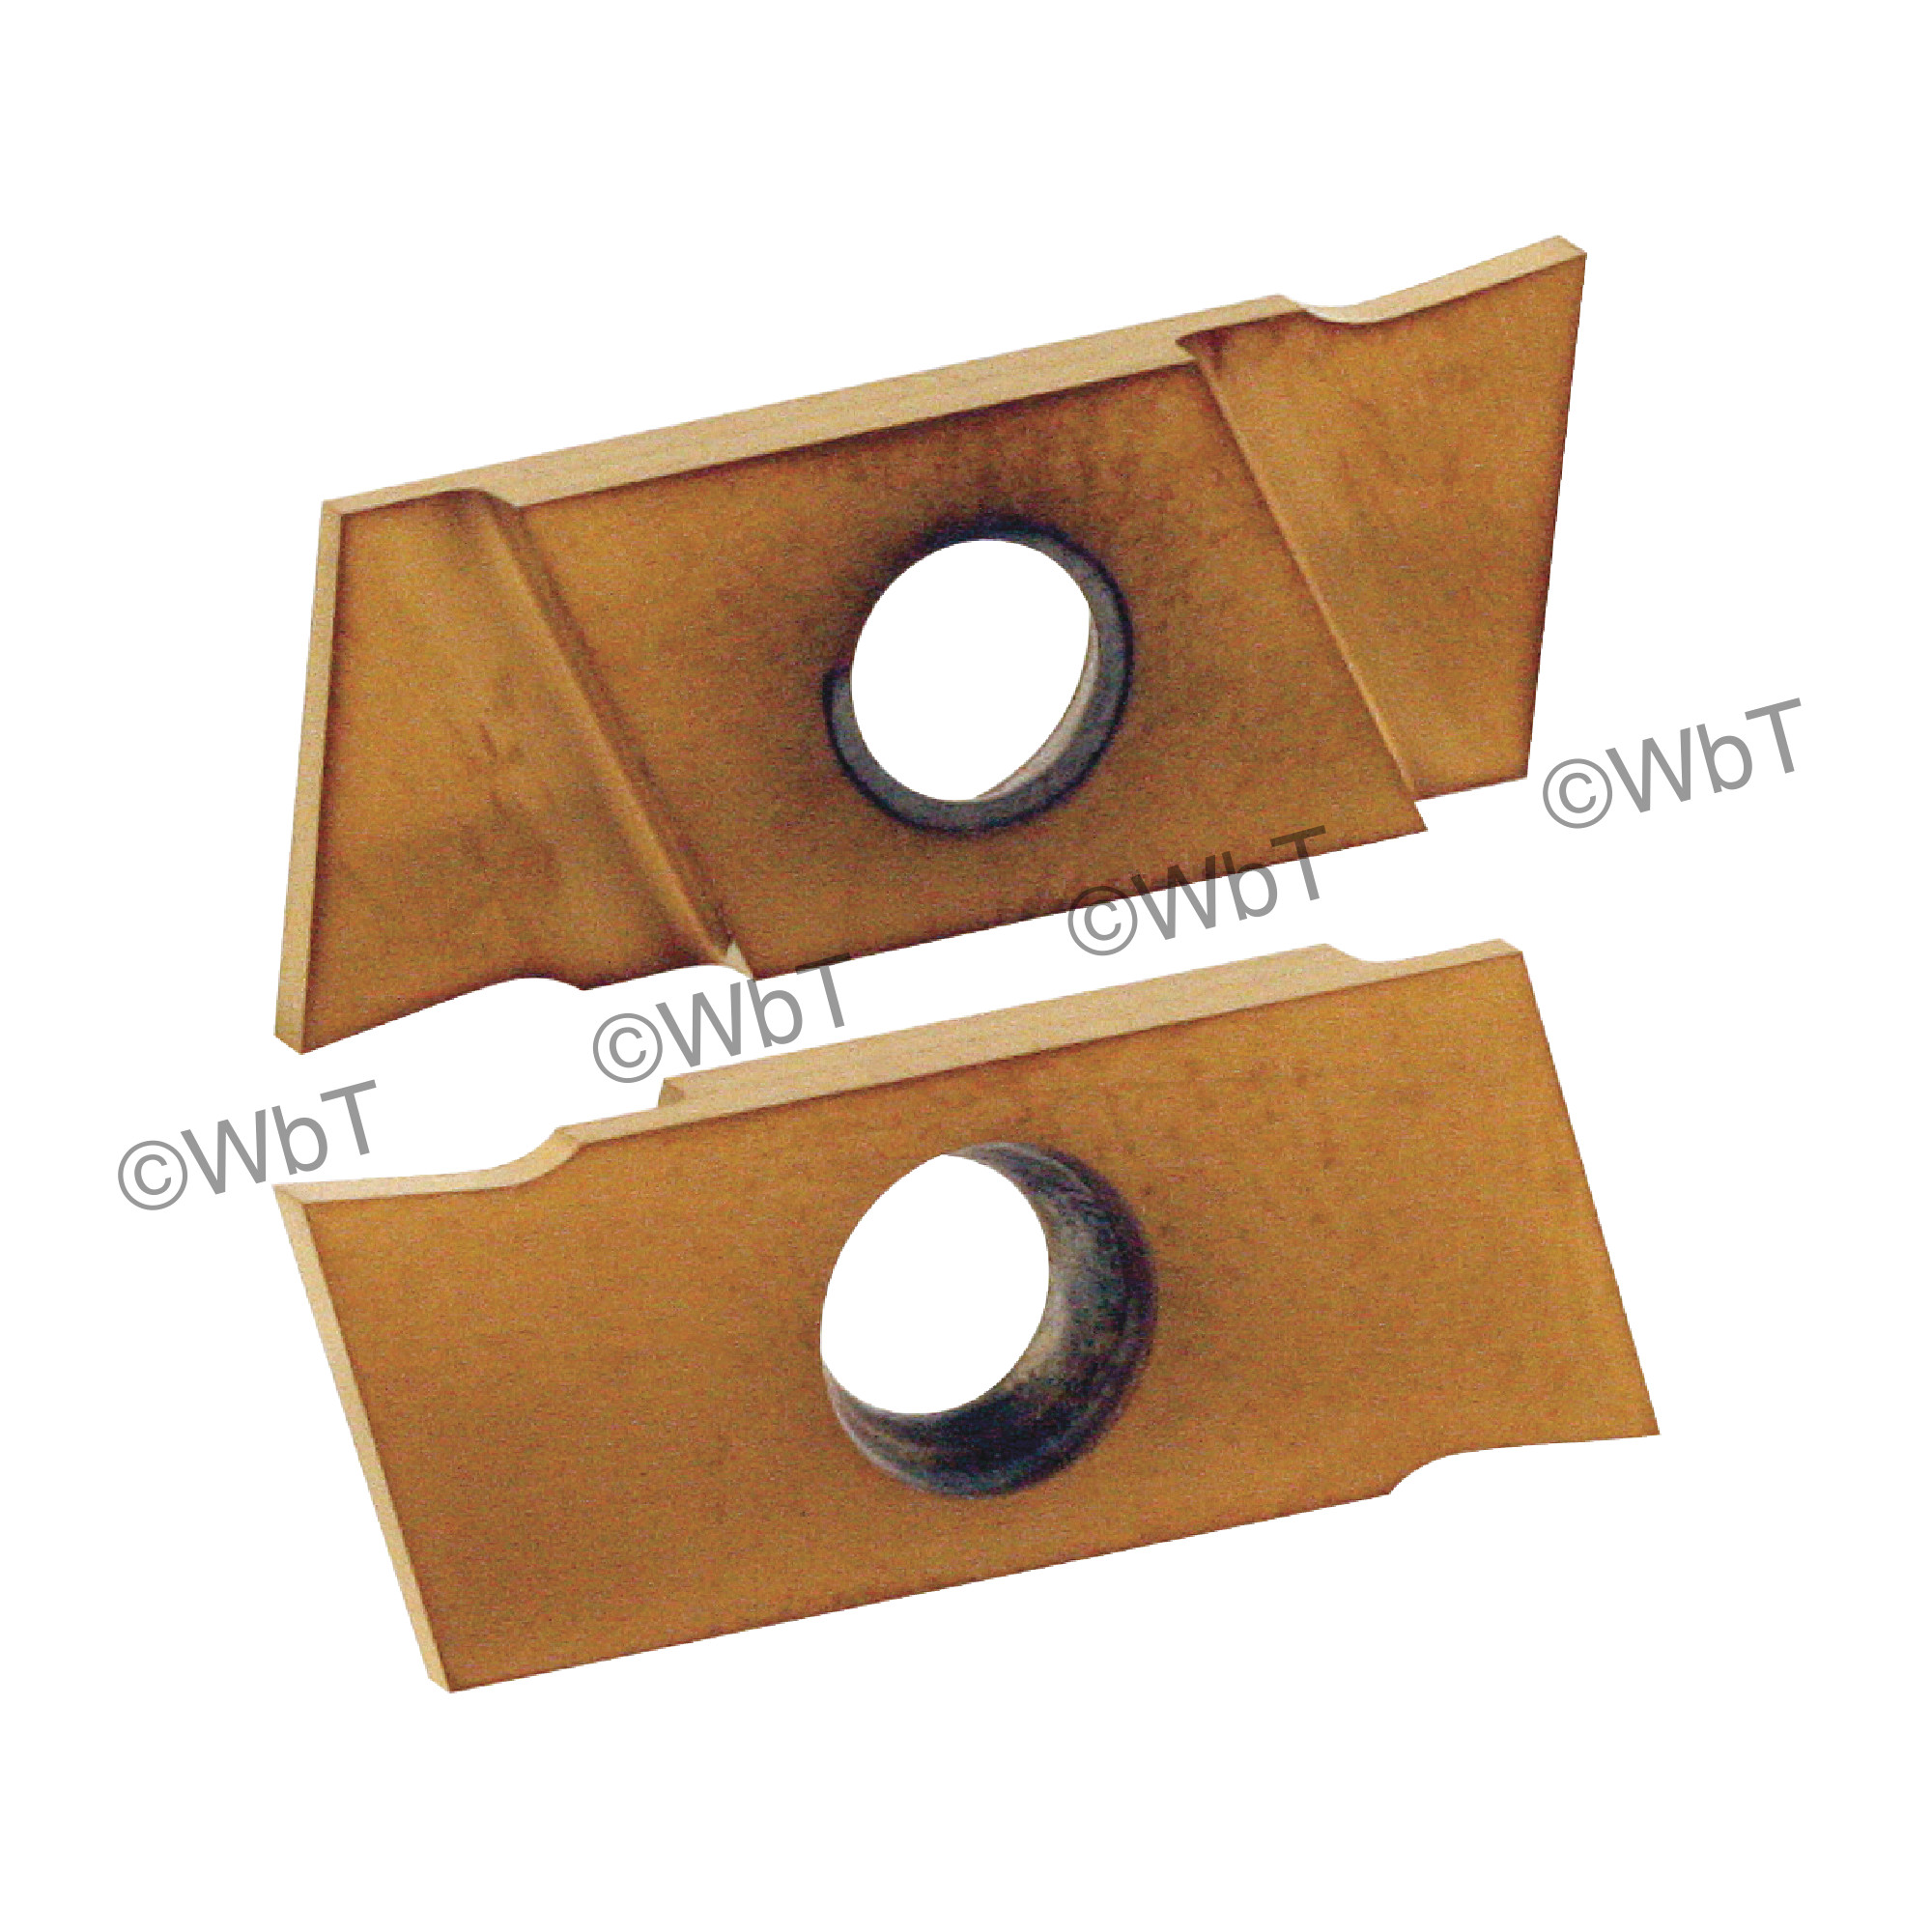 """NIKCOLE - GIE-7-GP-1.0RN C5-PV / Indexable Carbide Insert for Grooving & Parting / 0.039"""" Cutting Width / Right Hand"""